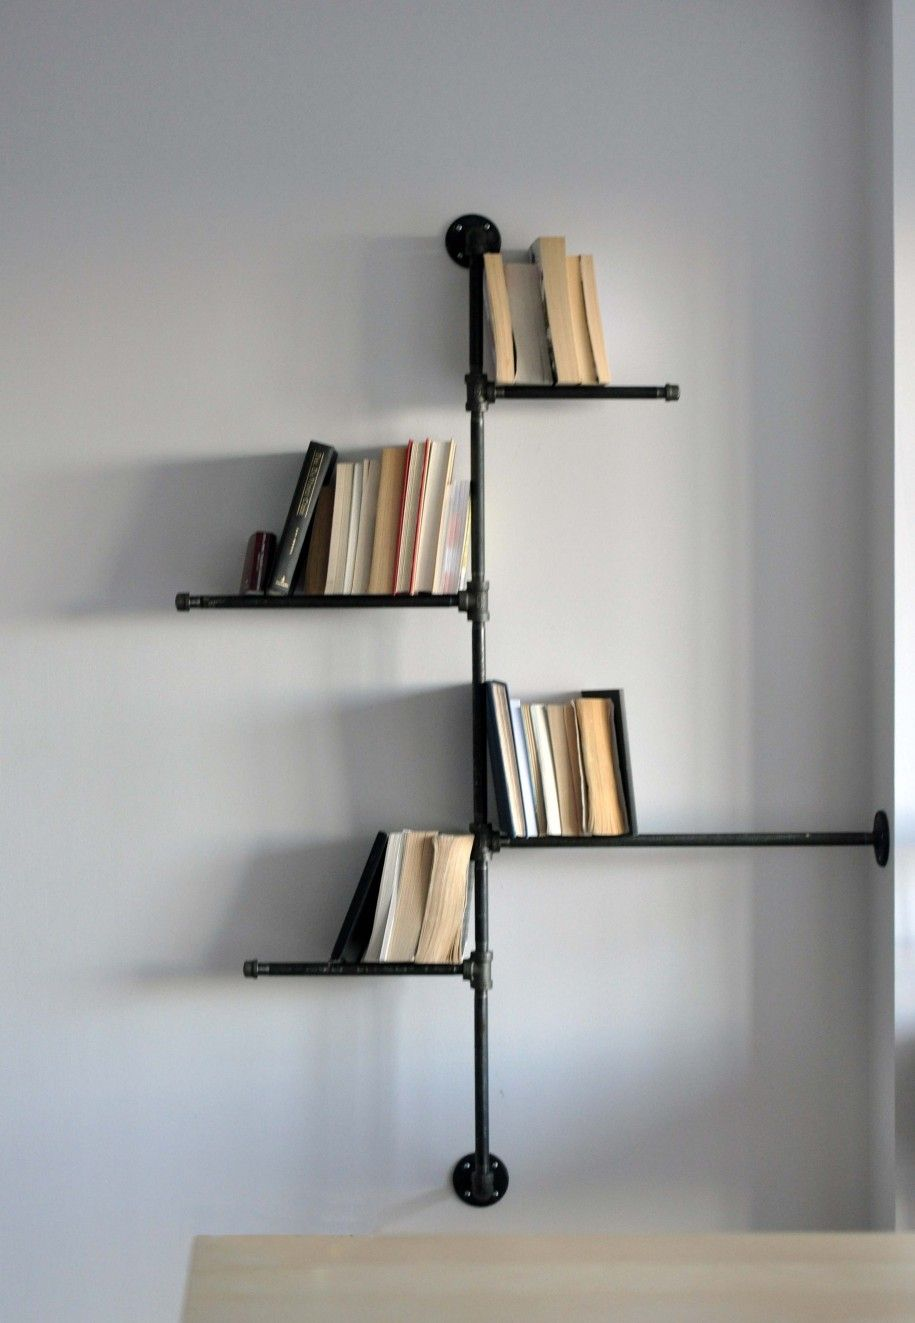 book shelves - Wall Hanging Shelves Design